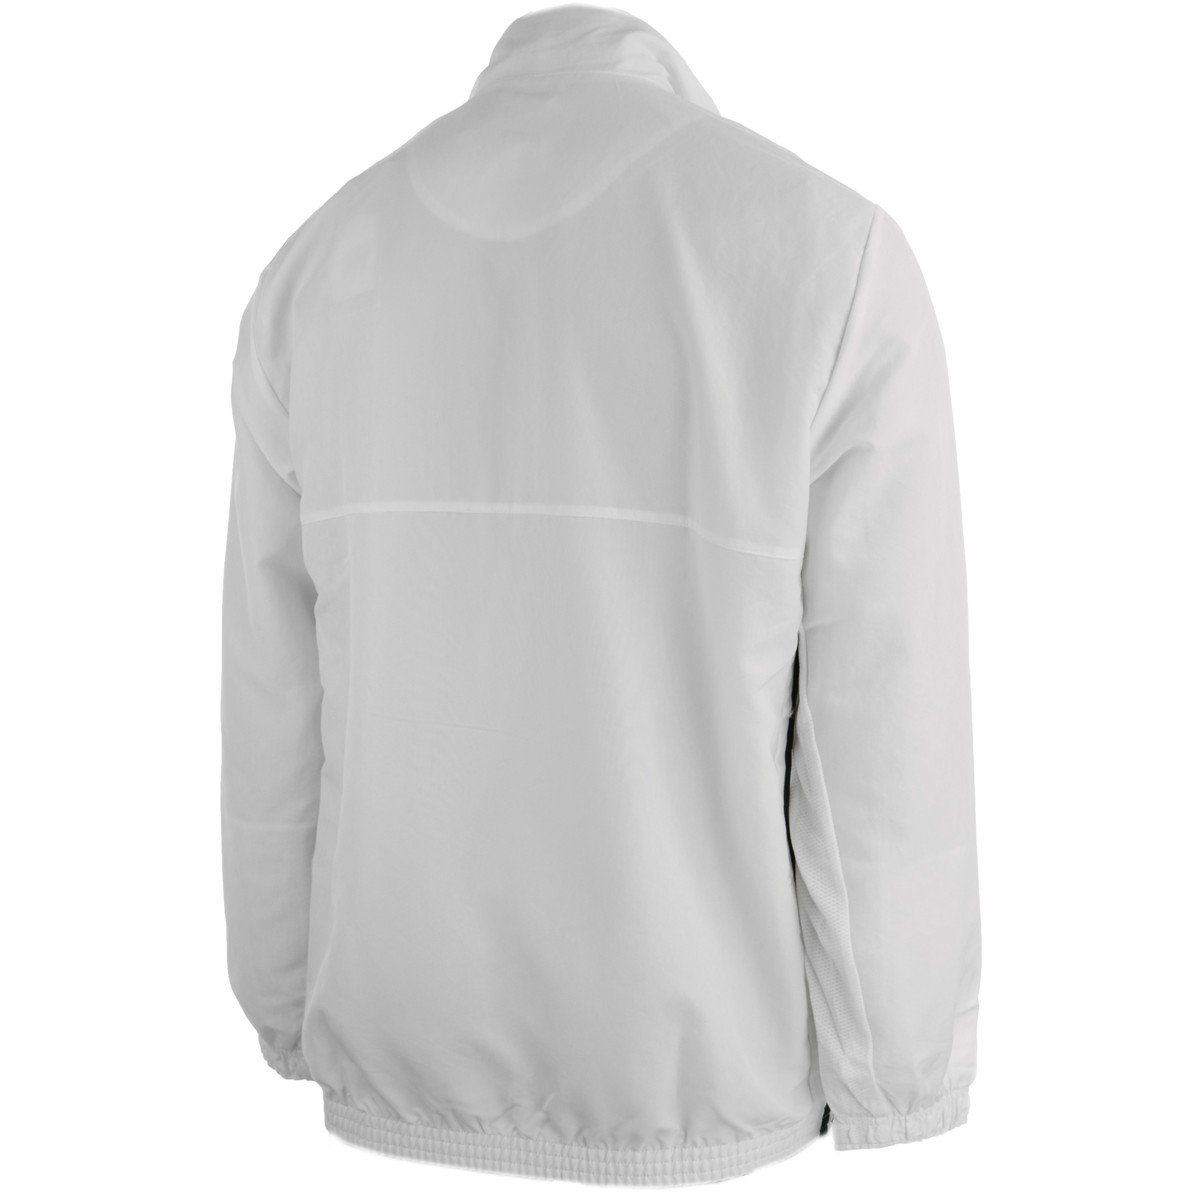 VESTE ADIDAS TEAM ADIDAS Homme Vêtements | Tennispro